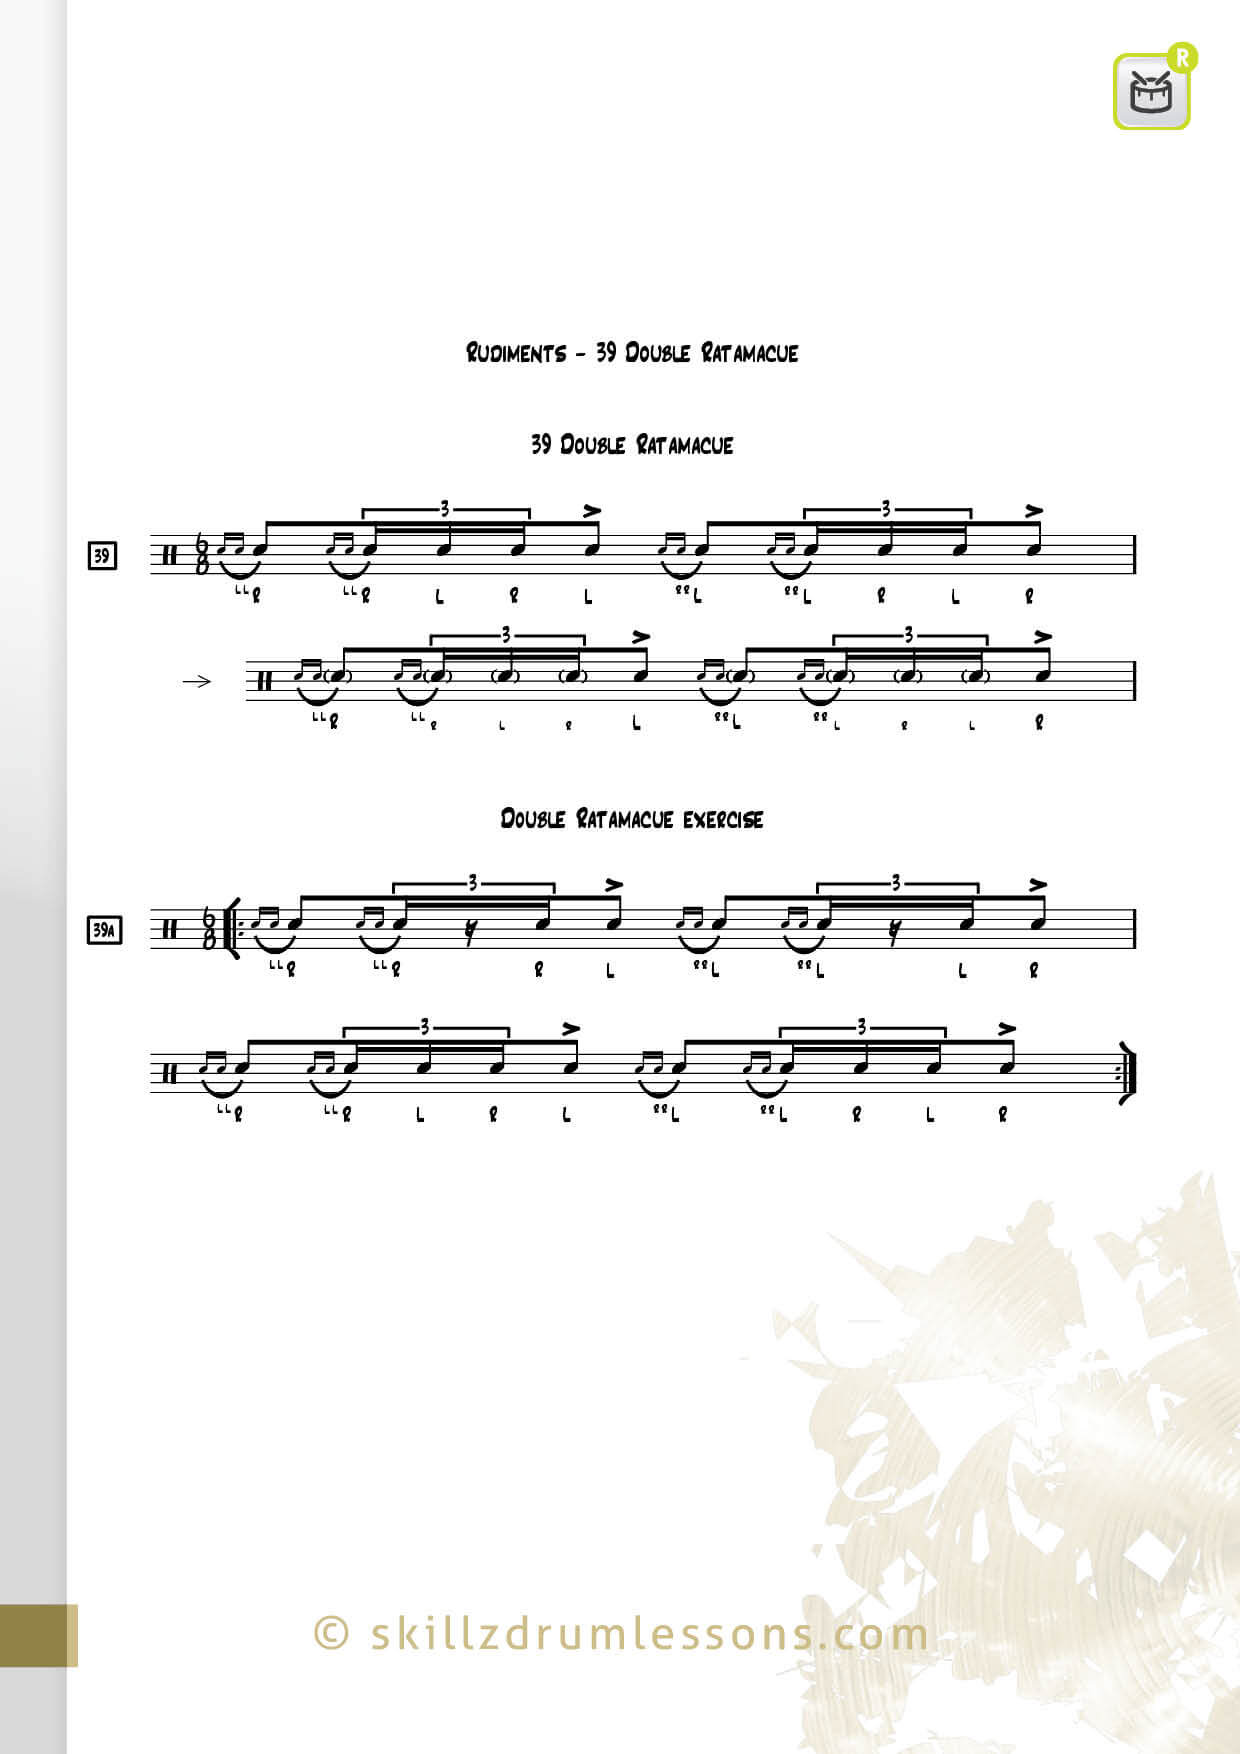 This is an image of the Official 40 Essential P.A.S. Rudiments #39 The Double Ratamacue by Skillz Drum Lessons